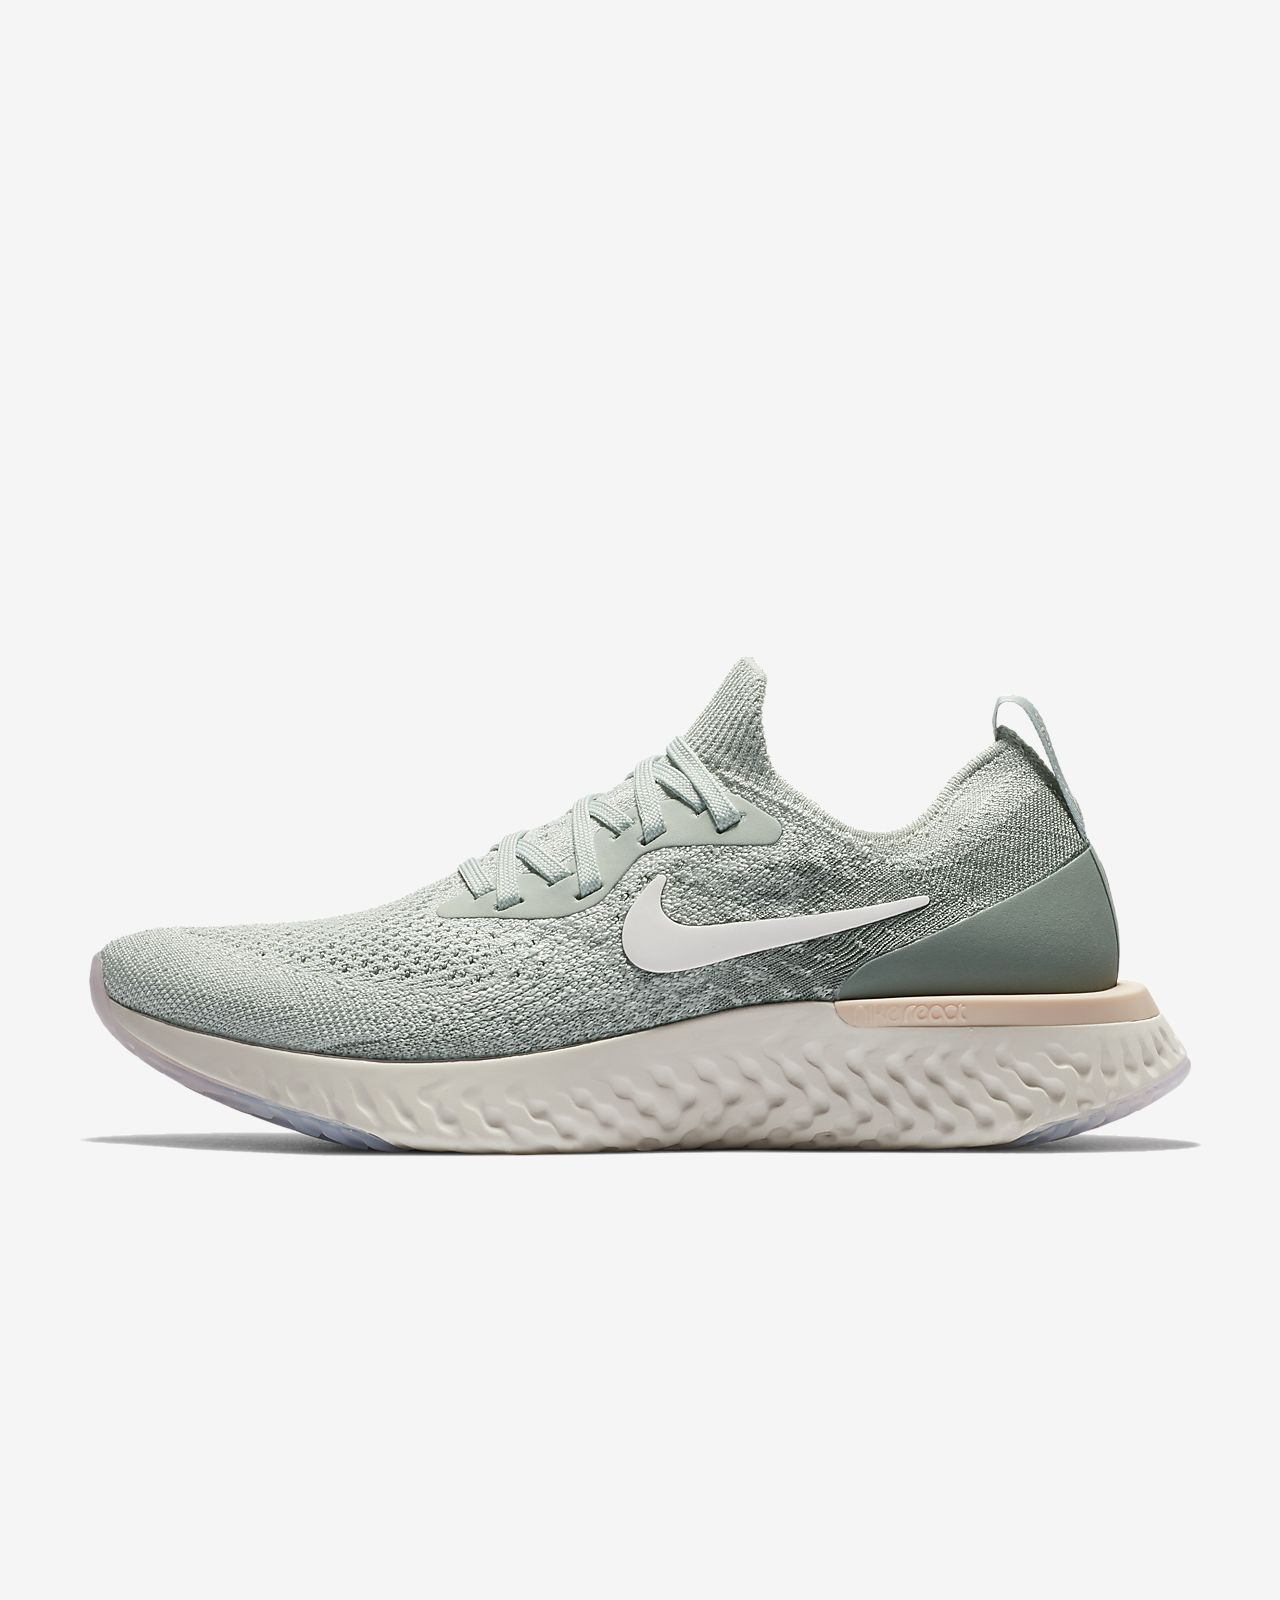 5bc50f80a336 Nike Epic React Flyknit 1 Women s Running Shoe. Nike.com IE